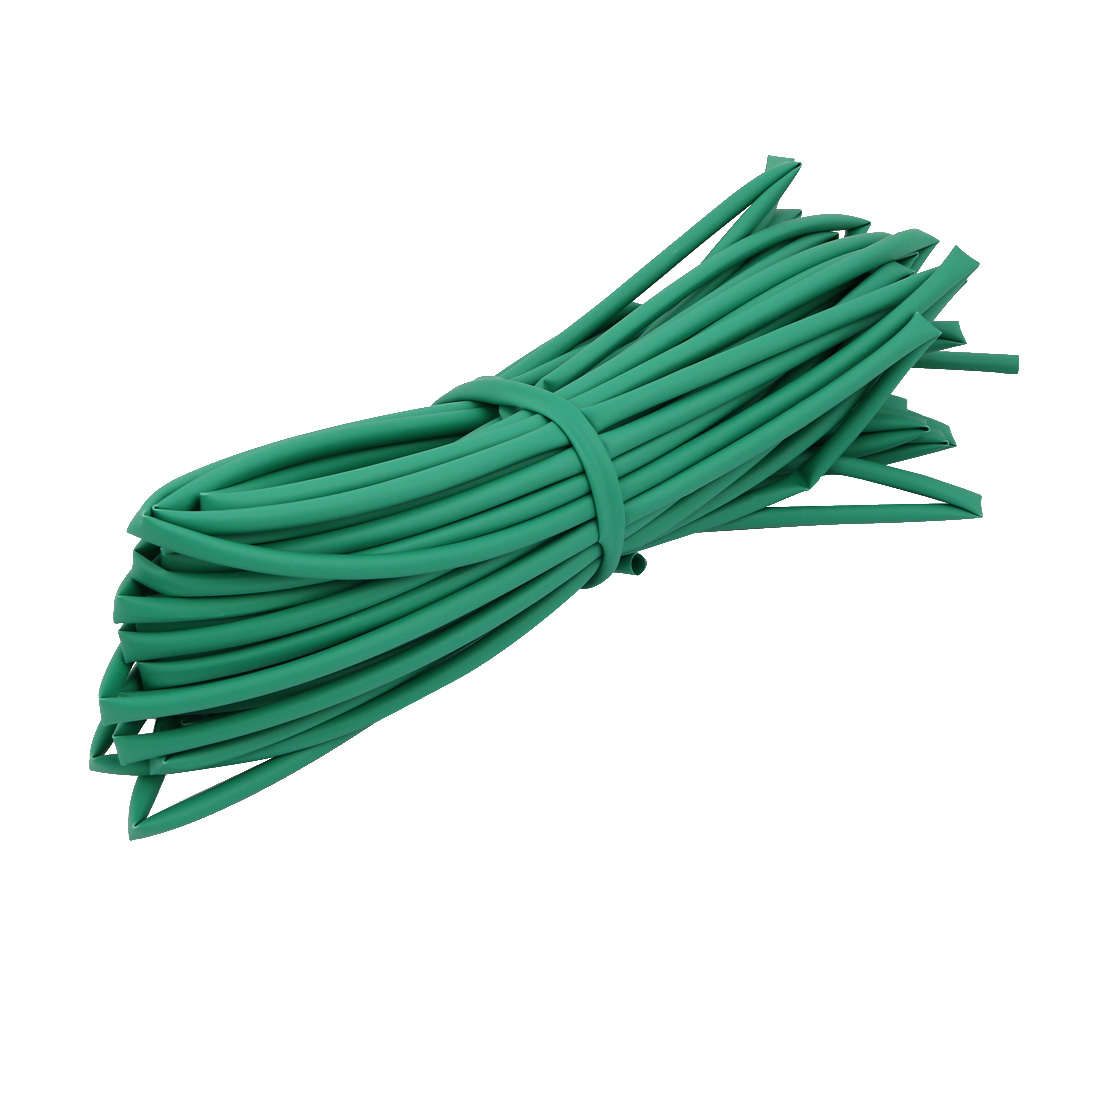 20M 0.2in Inner Dia Polyolefin Flame Retardant Tube Green for Wire Repairing